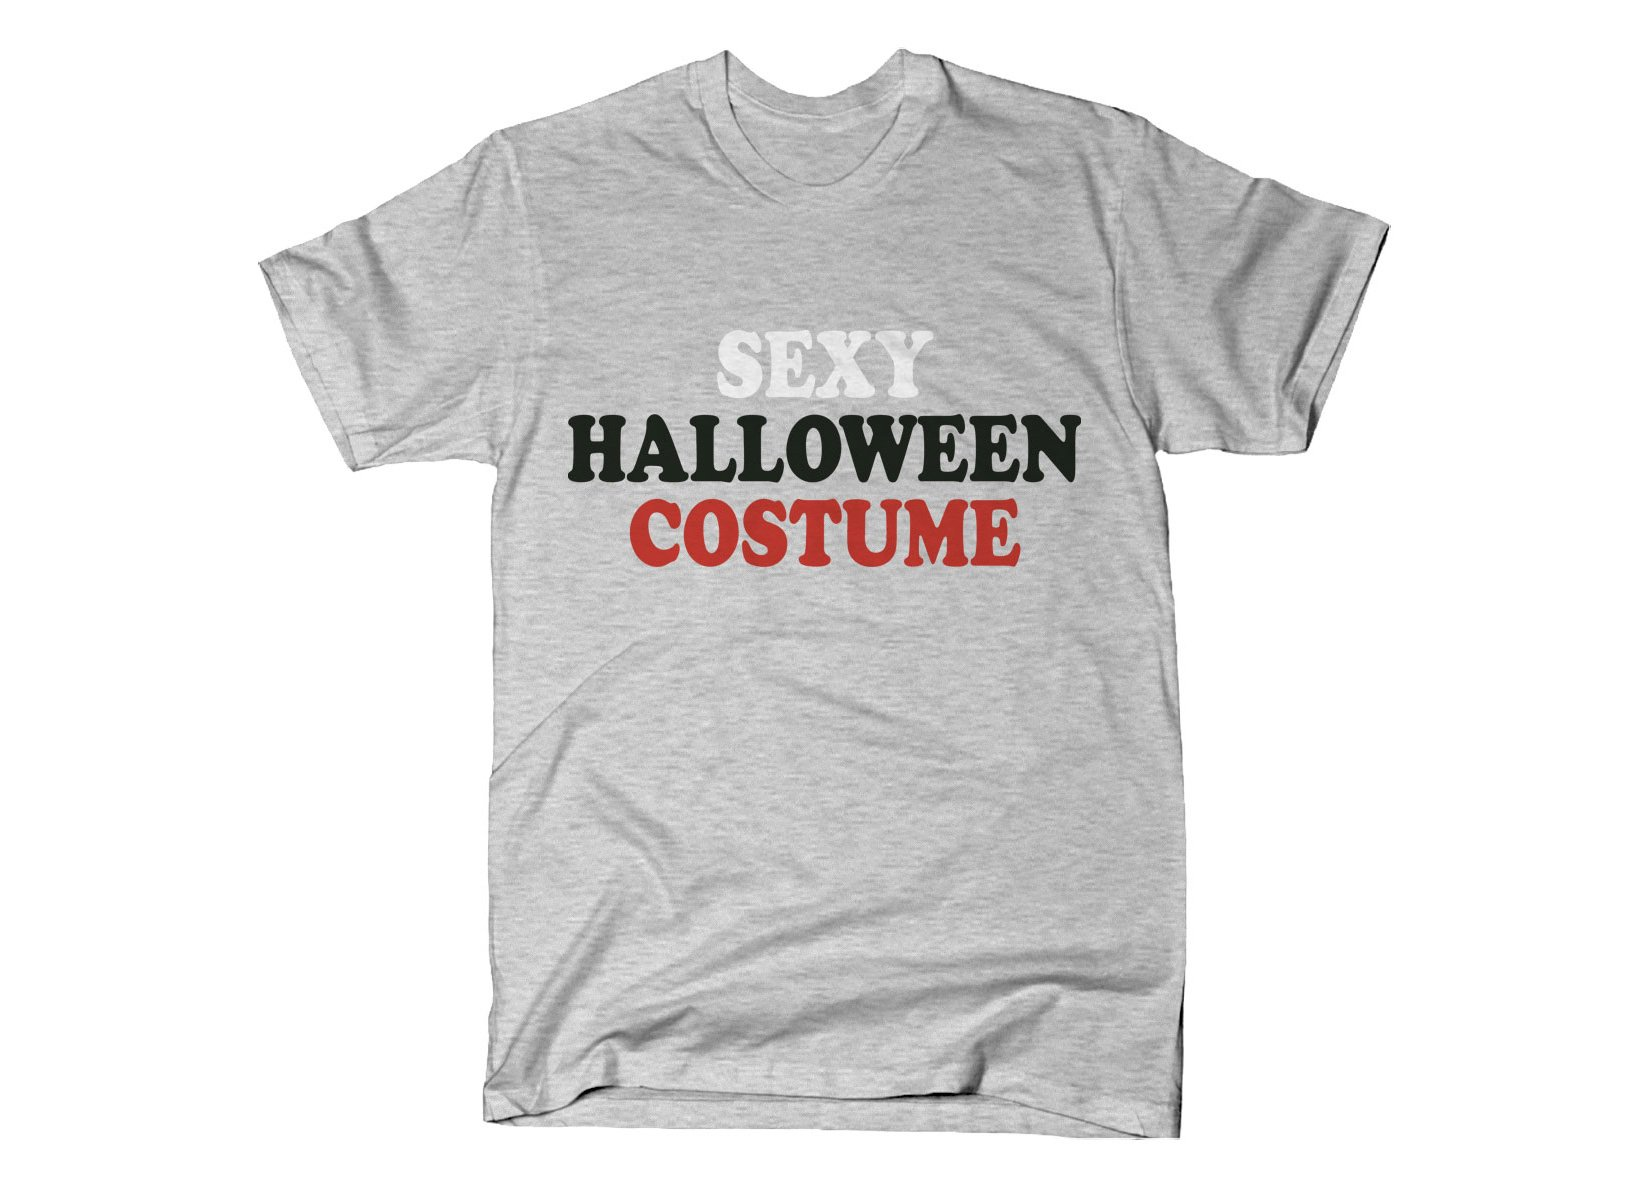 Sexy Halloween Costume on Mens T-Shirt